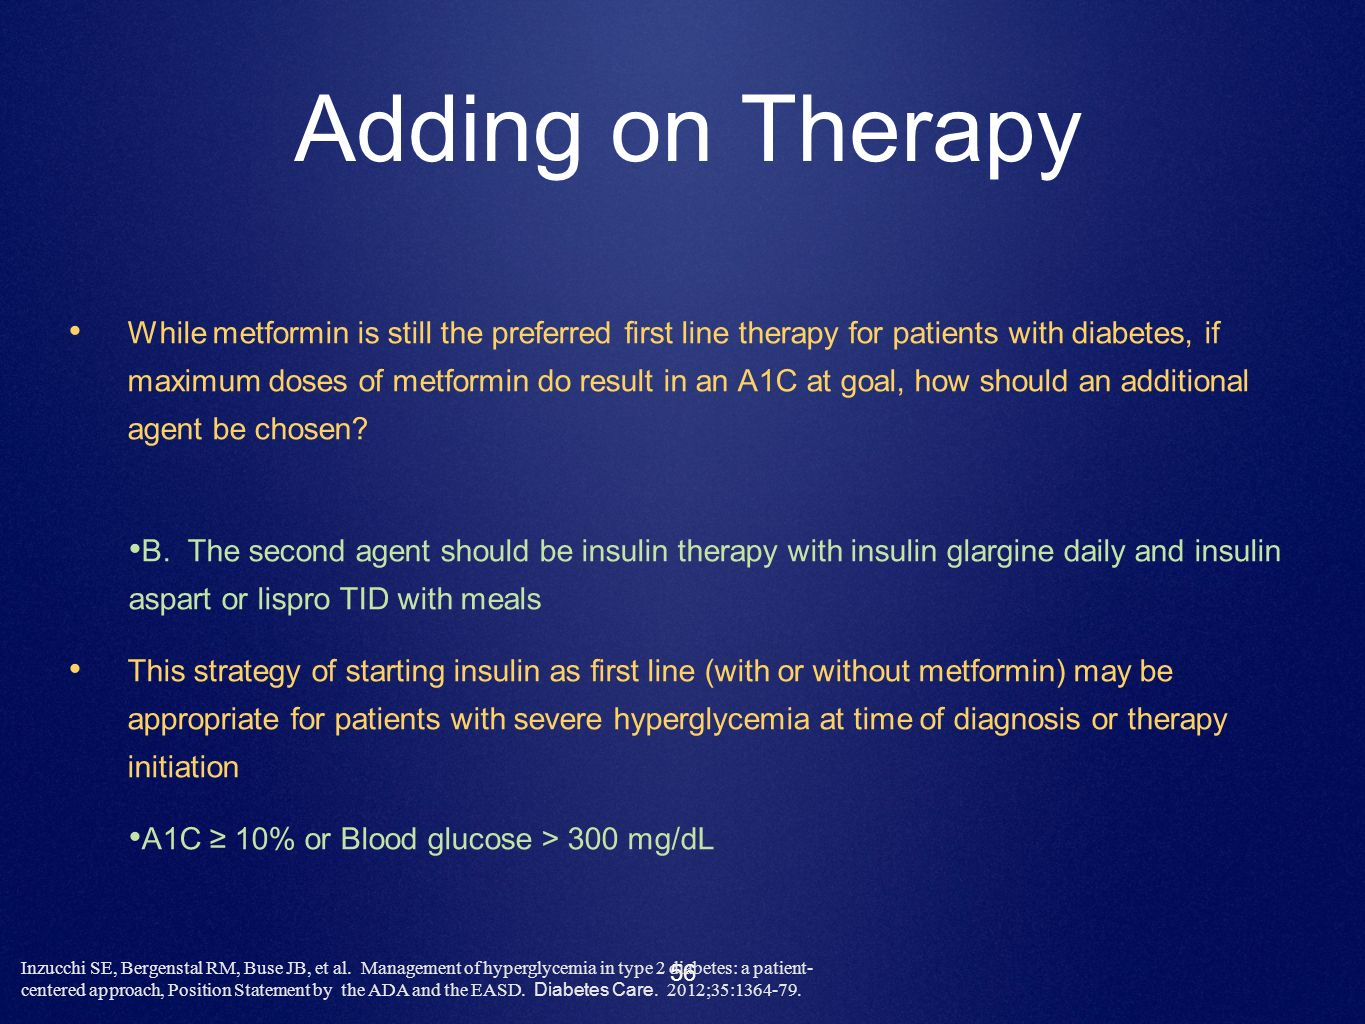 56 Adding on Therapy While metformin is still the preferred first line therapy for patients with diabetes, if maximum doses of metformin do result in